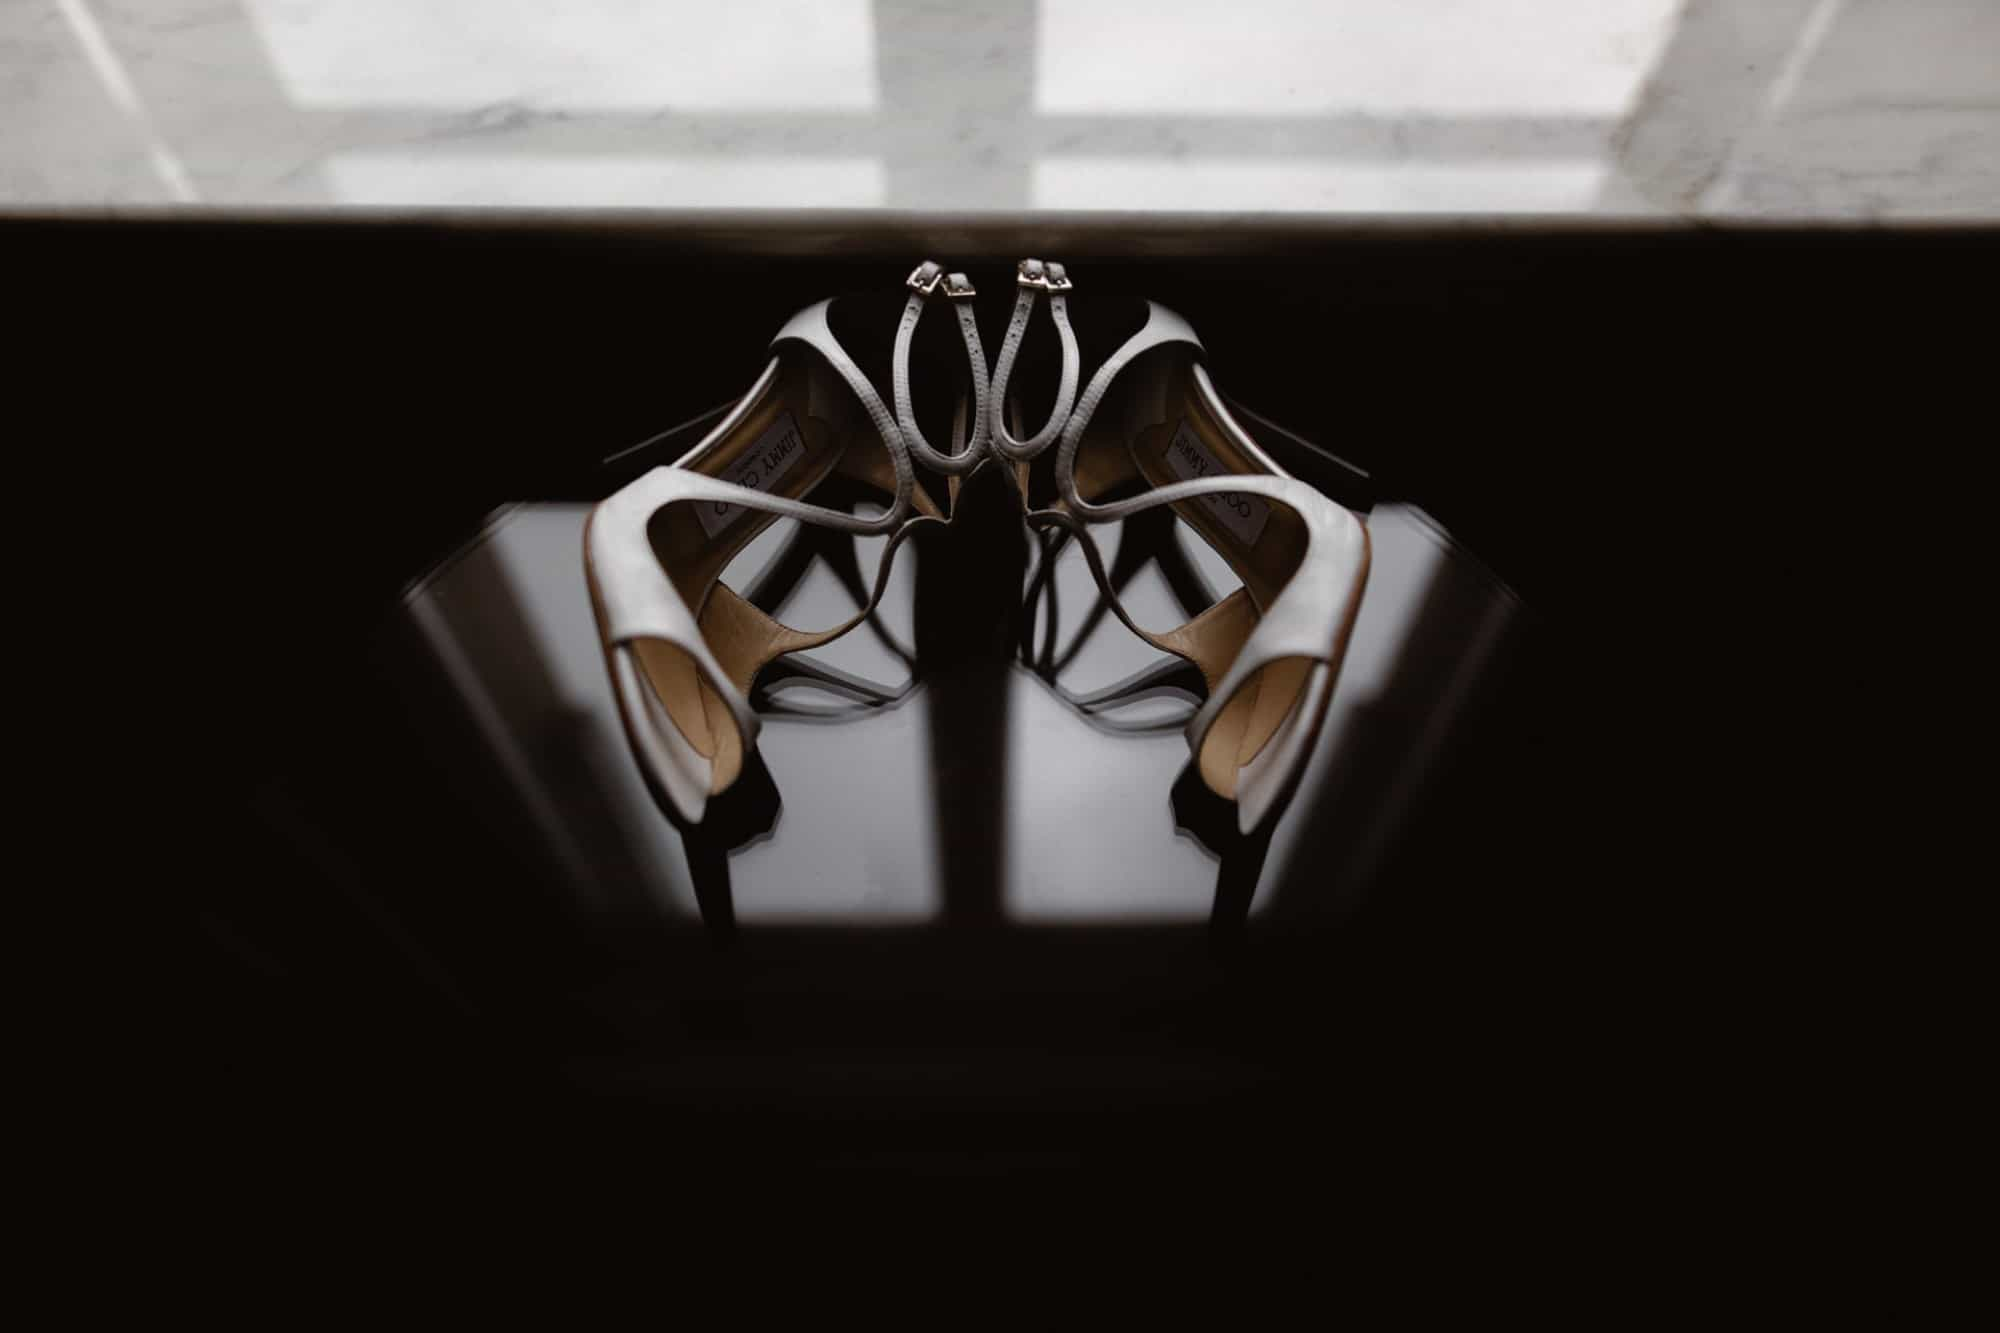 Pair of Jimmy Choo Wedding Shoes on reflective table